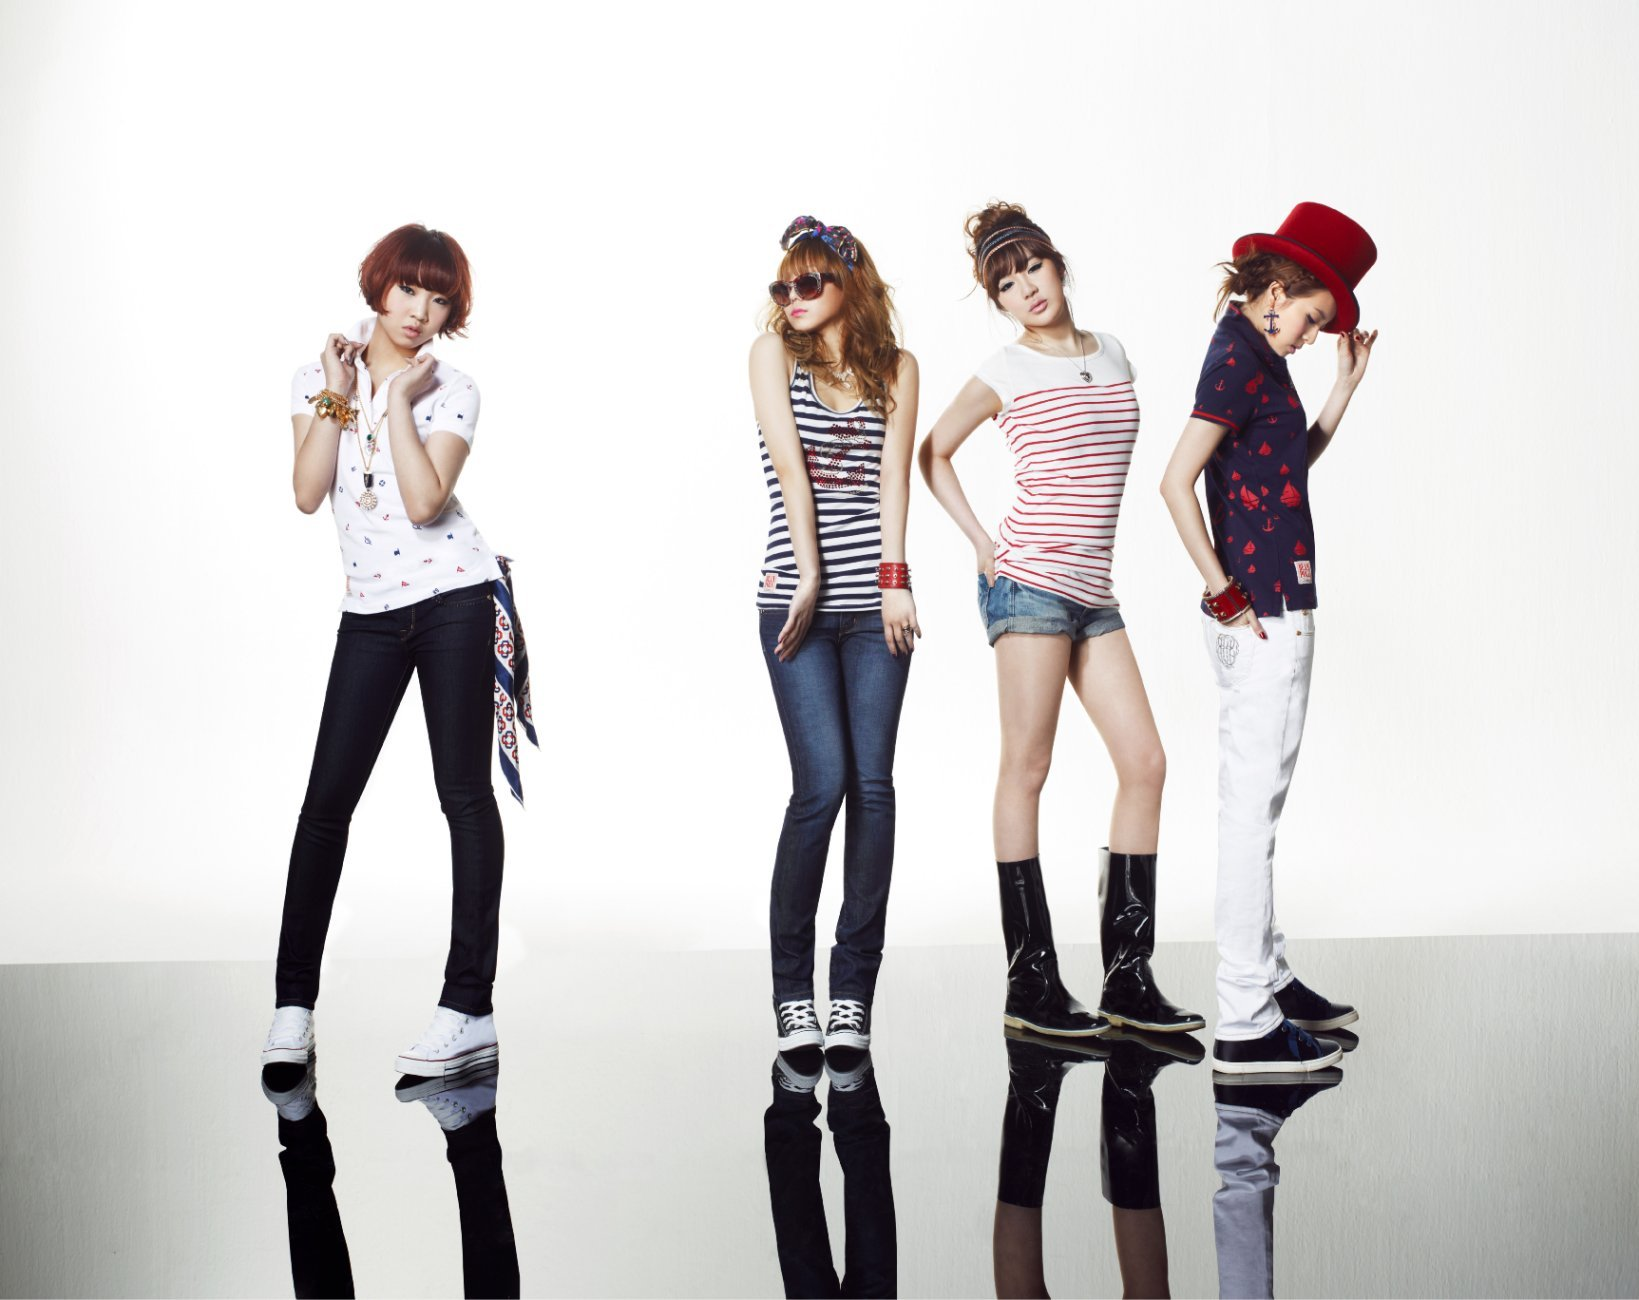 2ne1 Girls Images 2ne1 Hd Wallpaper And Background Photos 27508681